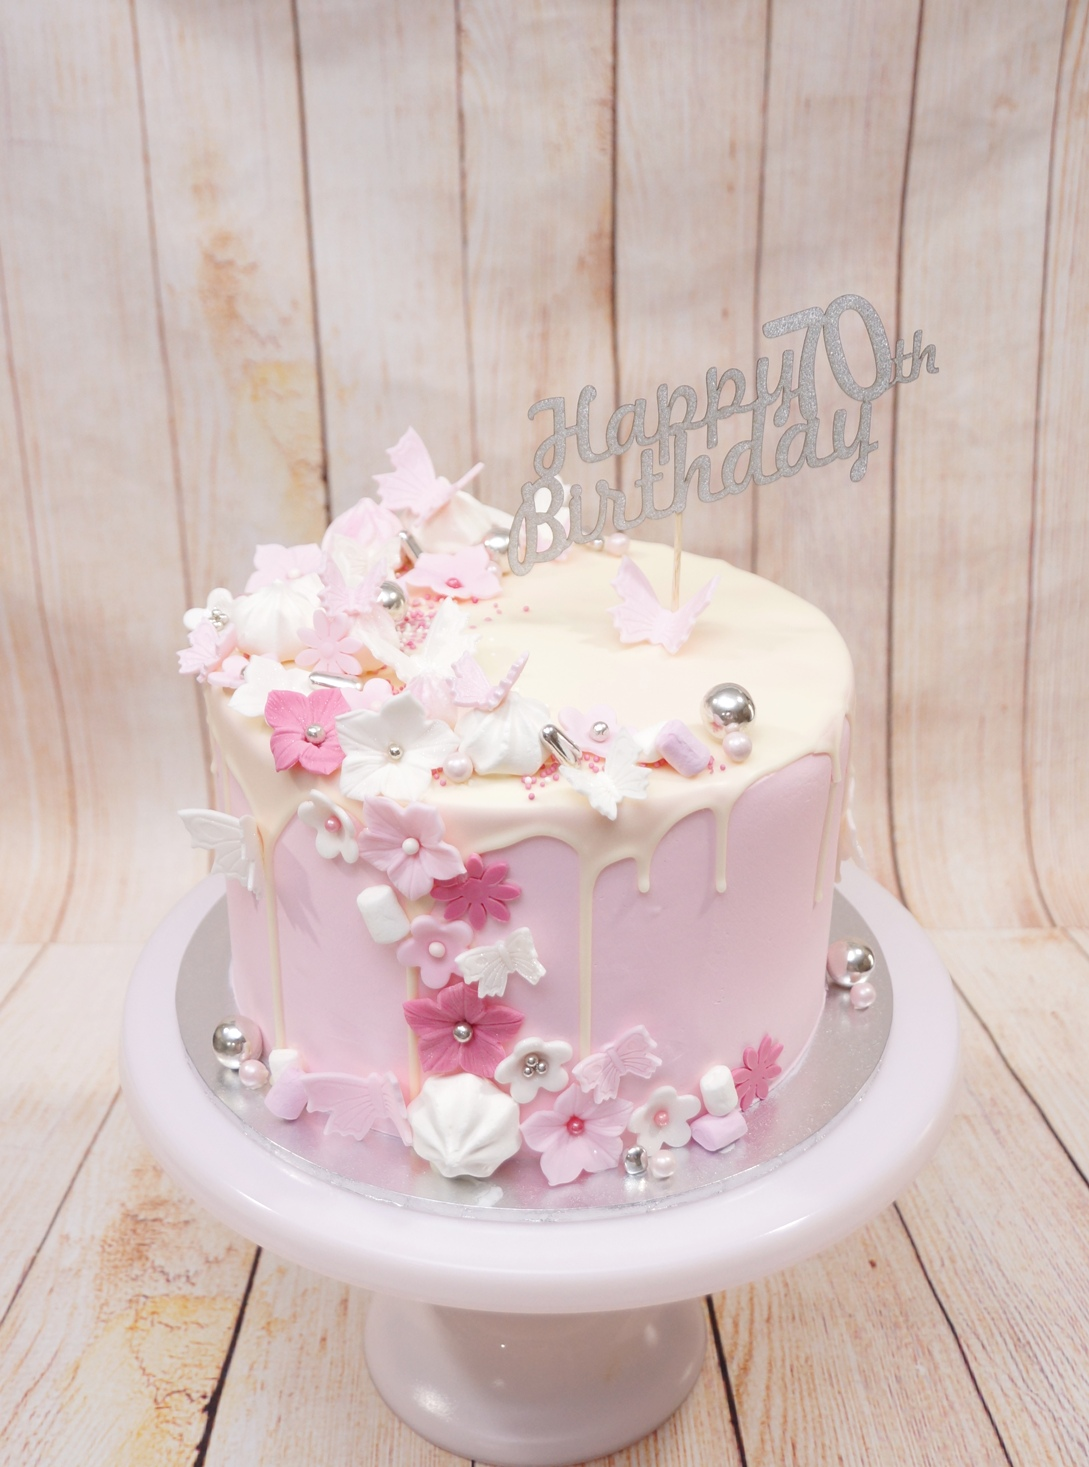 Pink buttercream with white chocolate dr